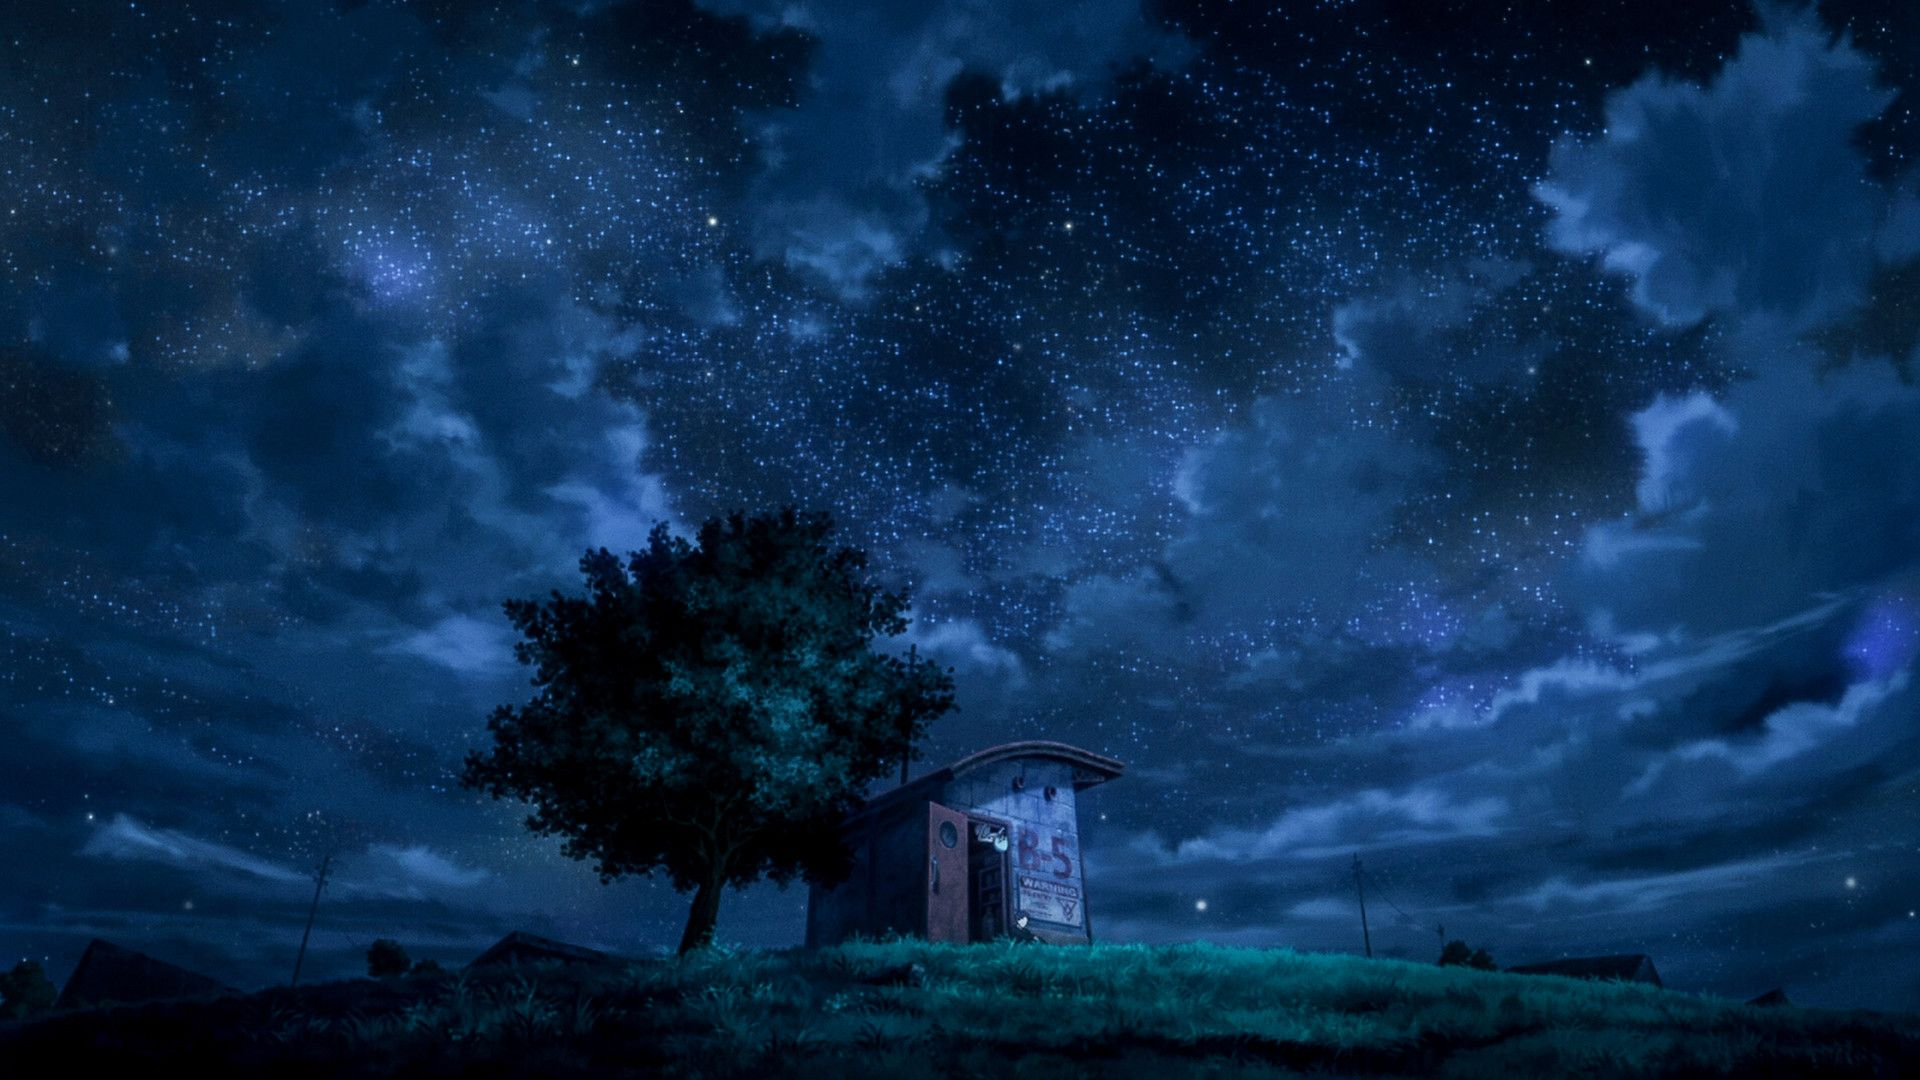 Anime Scenery At Night wallpaper hermoso Pinterest